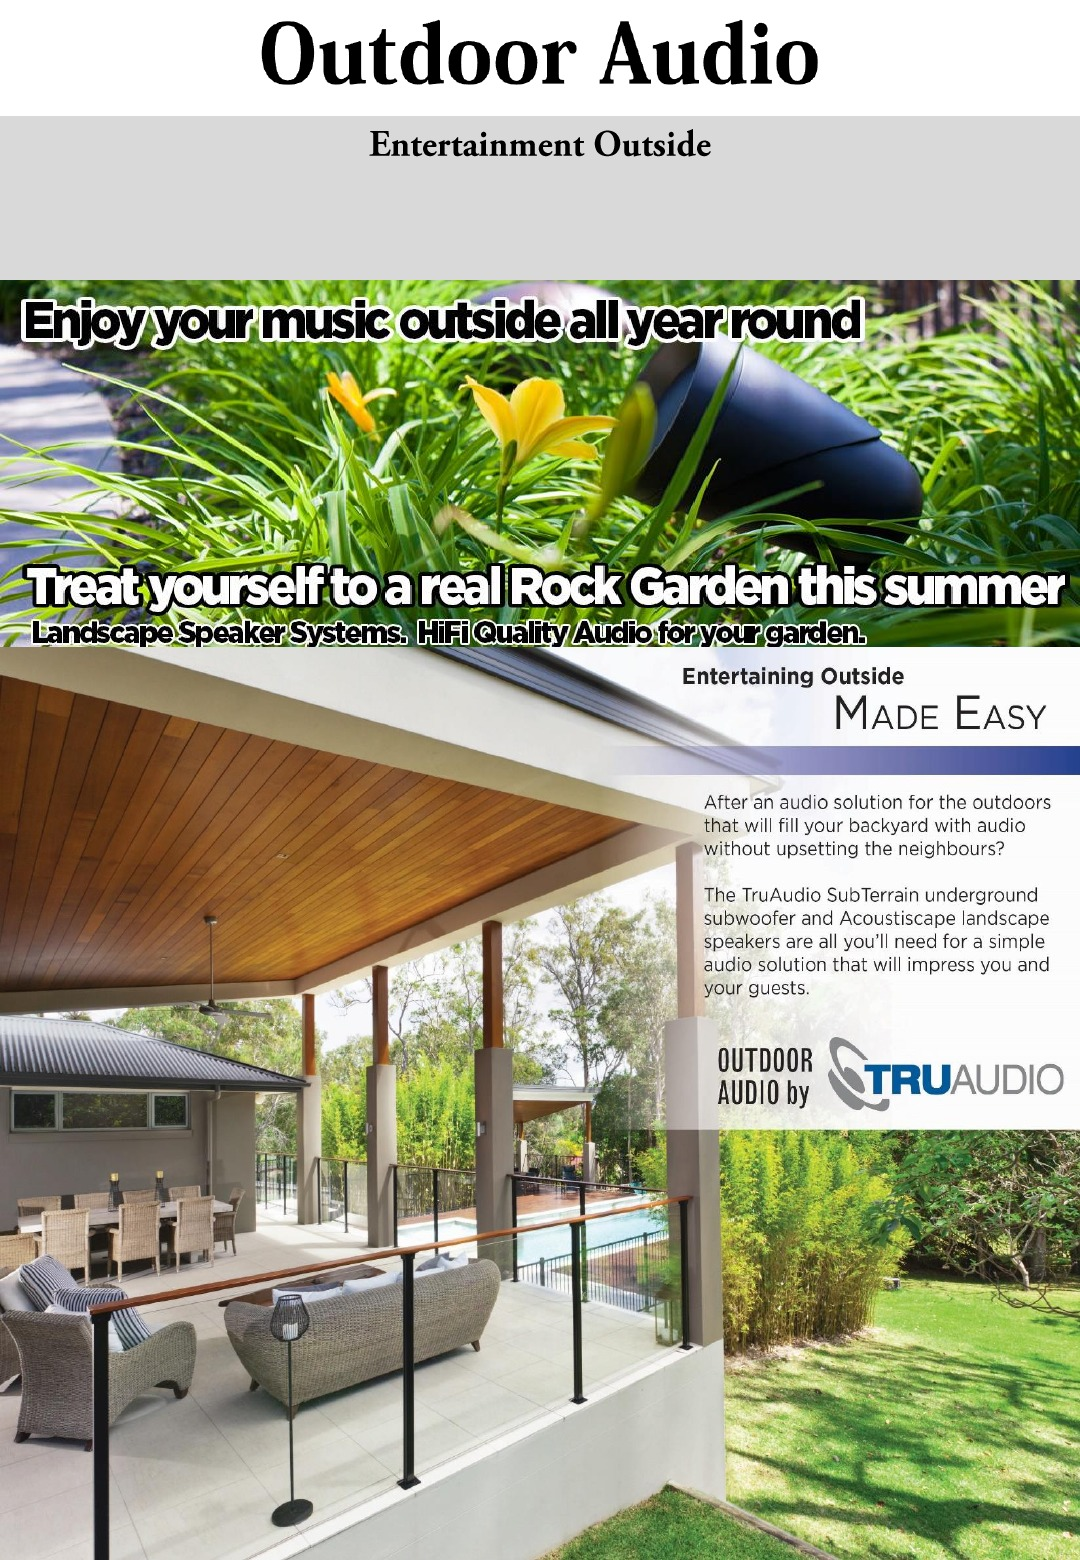 Savi Definitive Guide 1st Editio Streamer With 3x Airplay Ce Pro On Installing Outdoor Wiring Speakers Entertaining Outside Should Be Extremely Pleasurable Great Background Music To Enjoy The